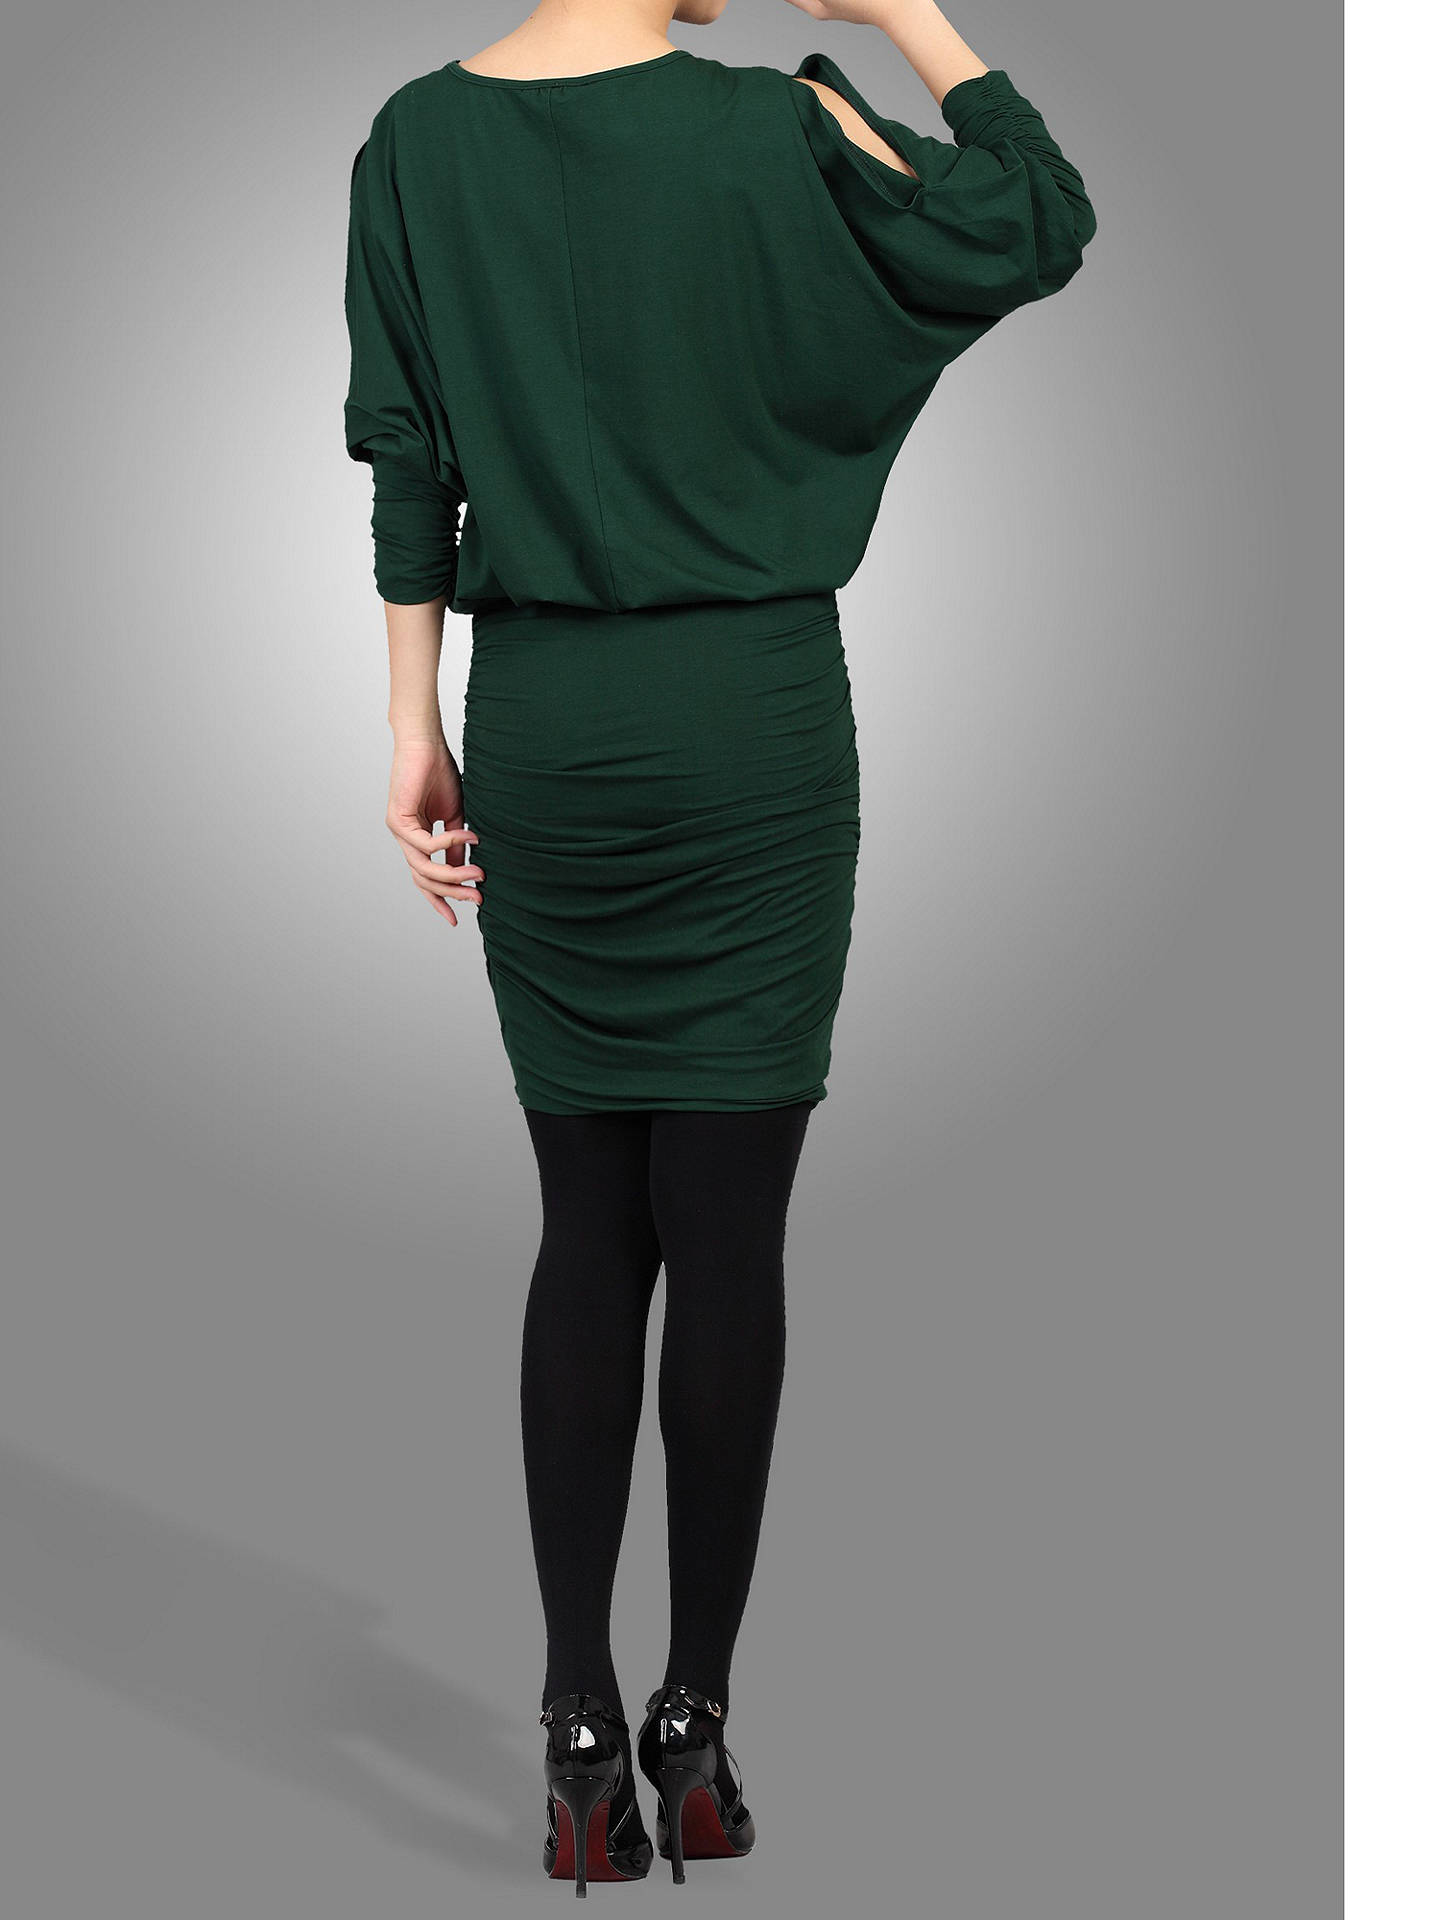 BuyJolie Moi Batwing Ruched Tunic Dress, Dark Green, S Online at johnlewis.com